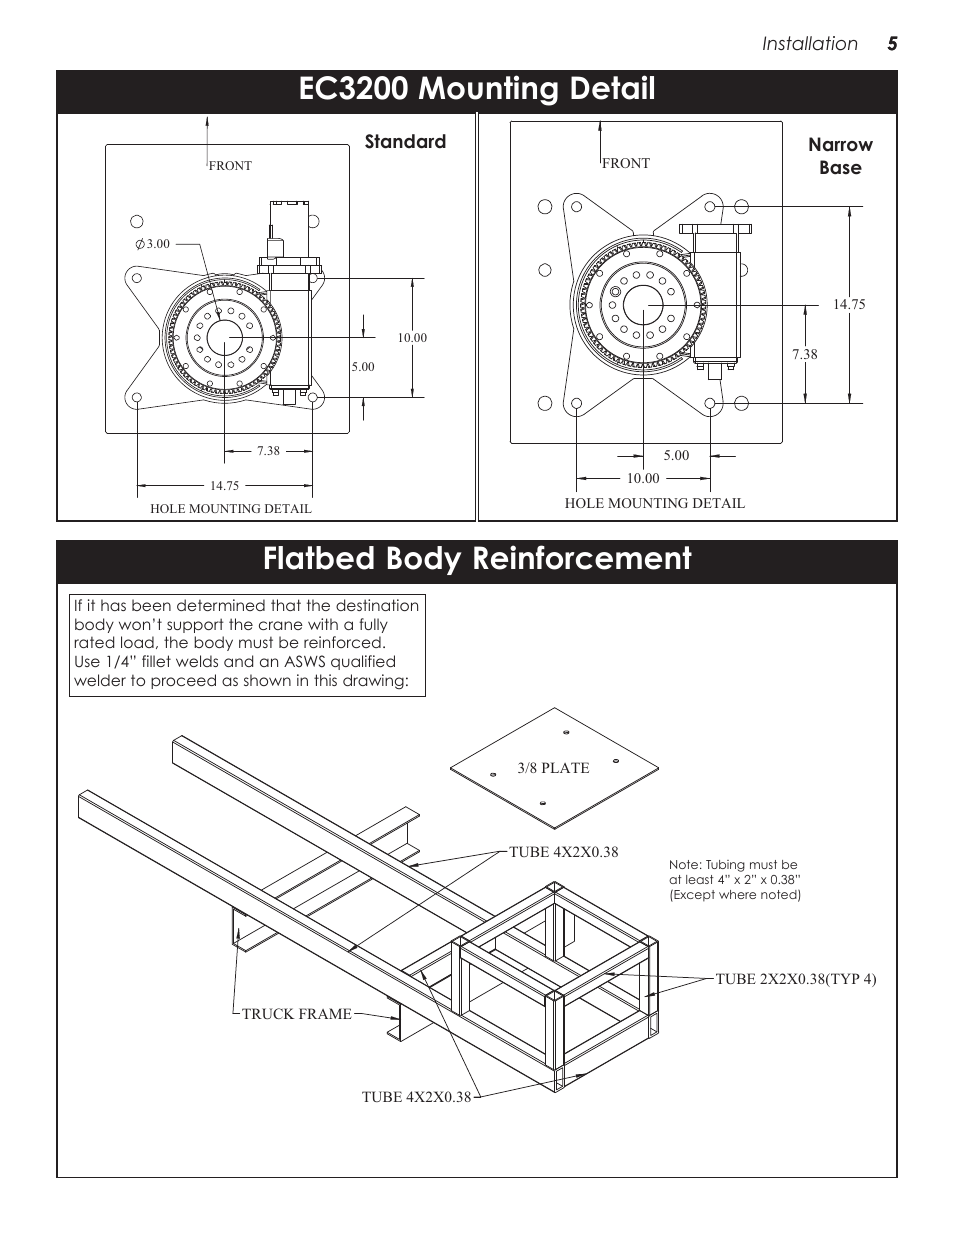 Flatbed body reinforcement, Ec3200 mounting detail